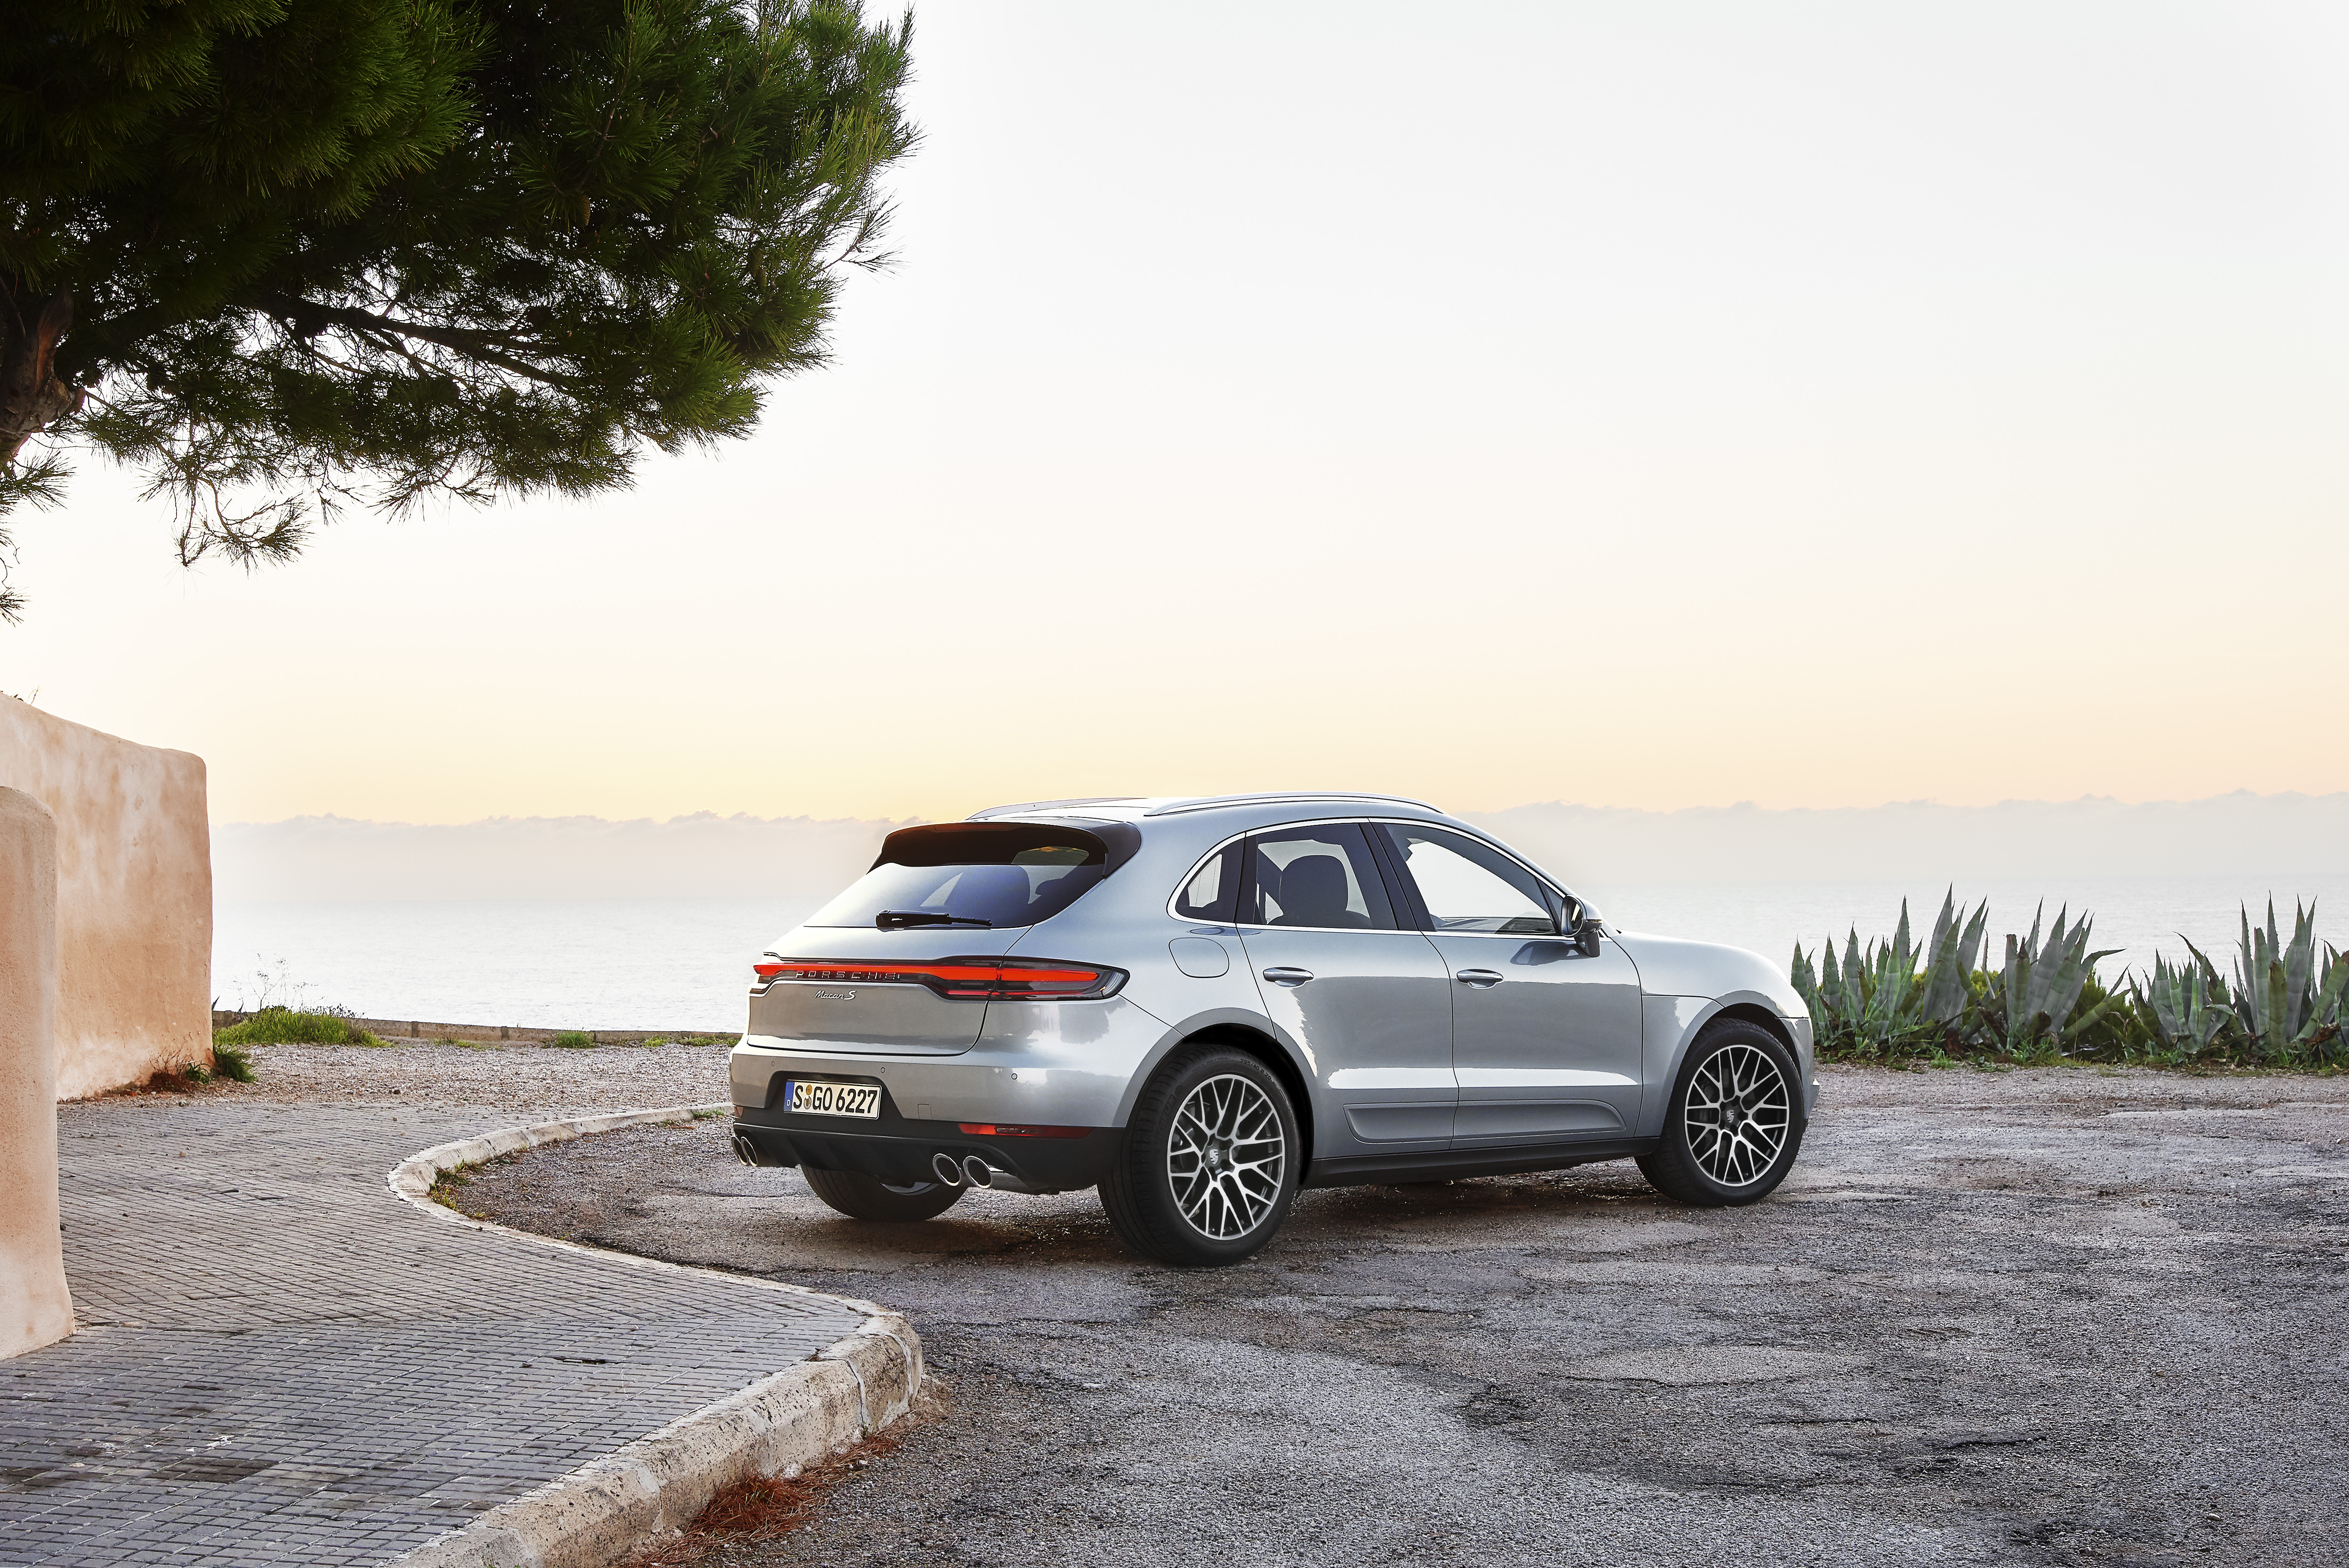 91 All New 2020 Porsche Macan Price and Release date